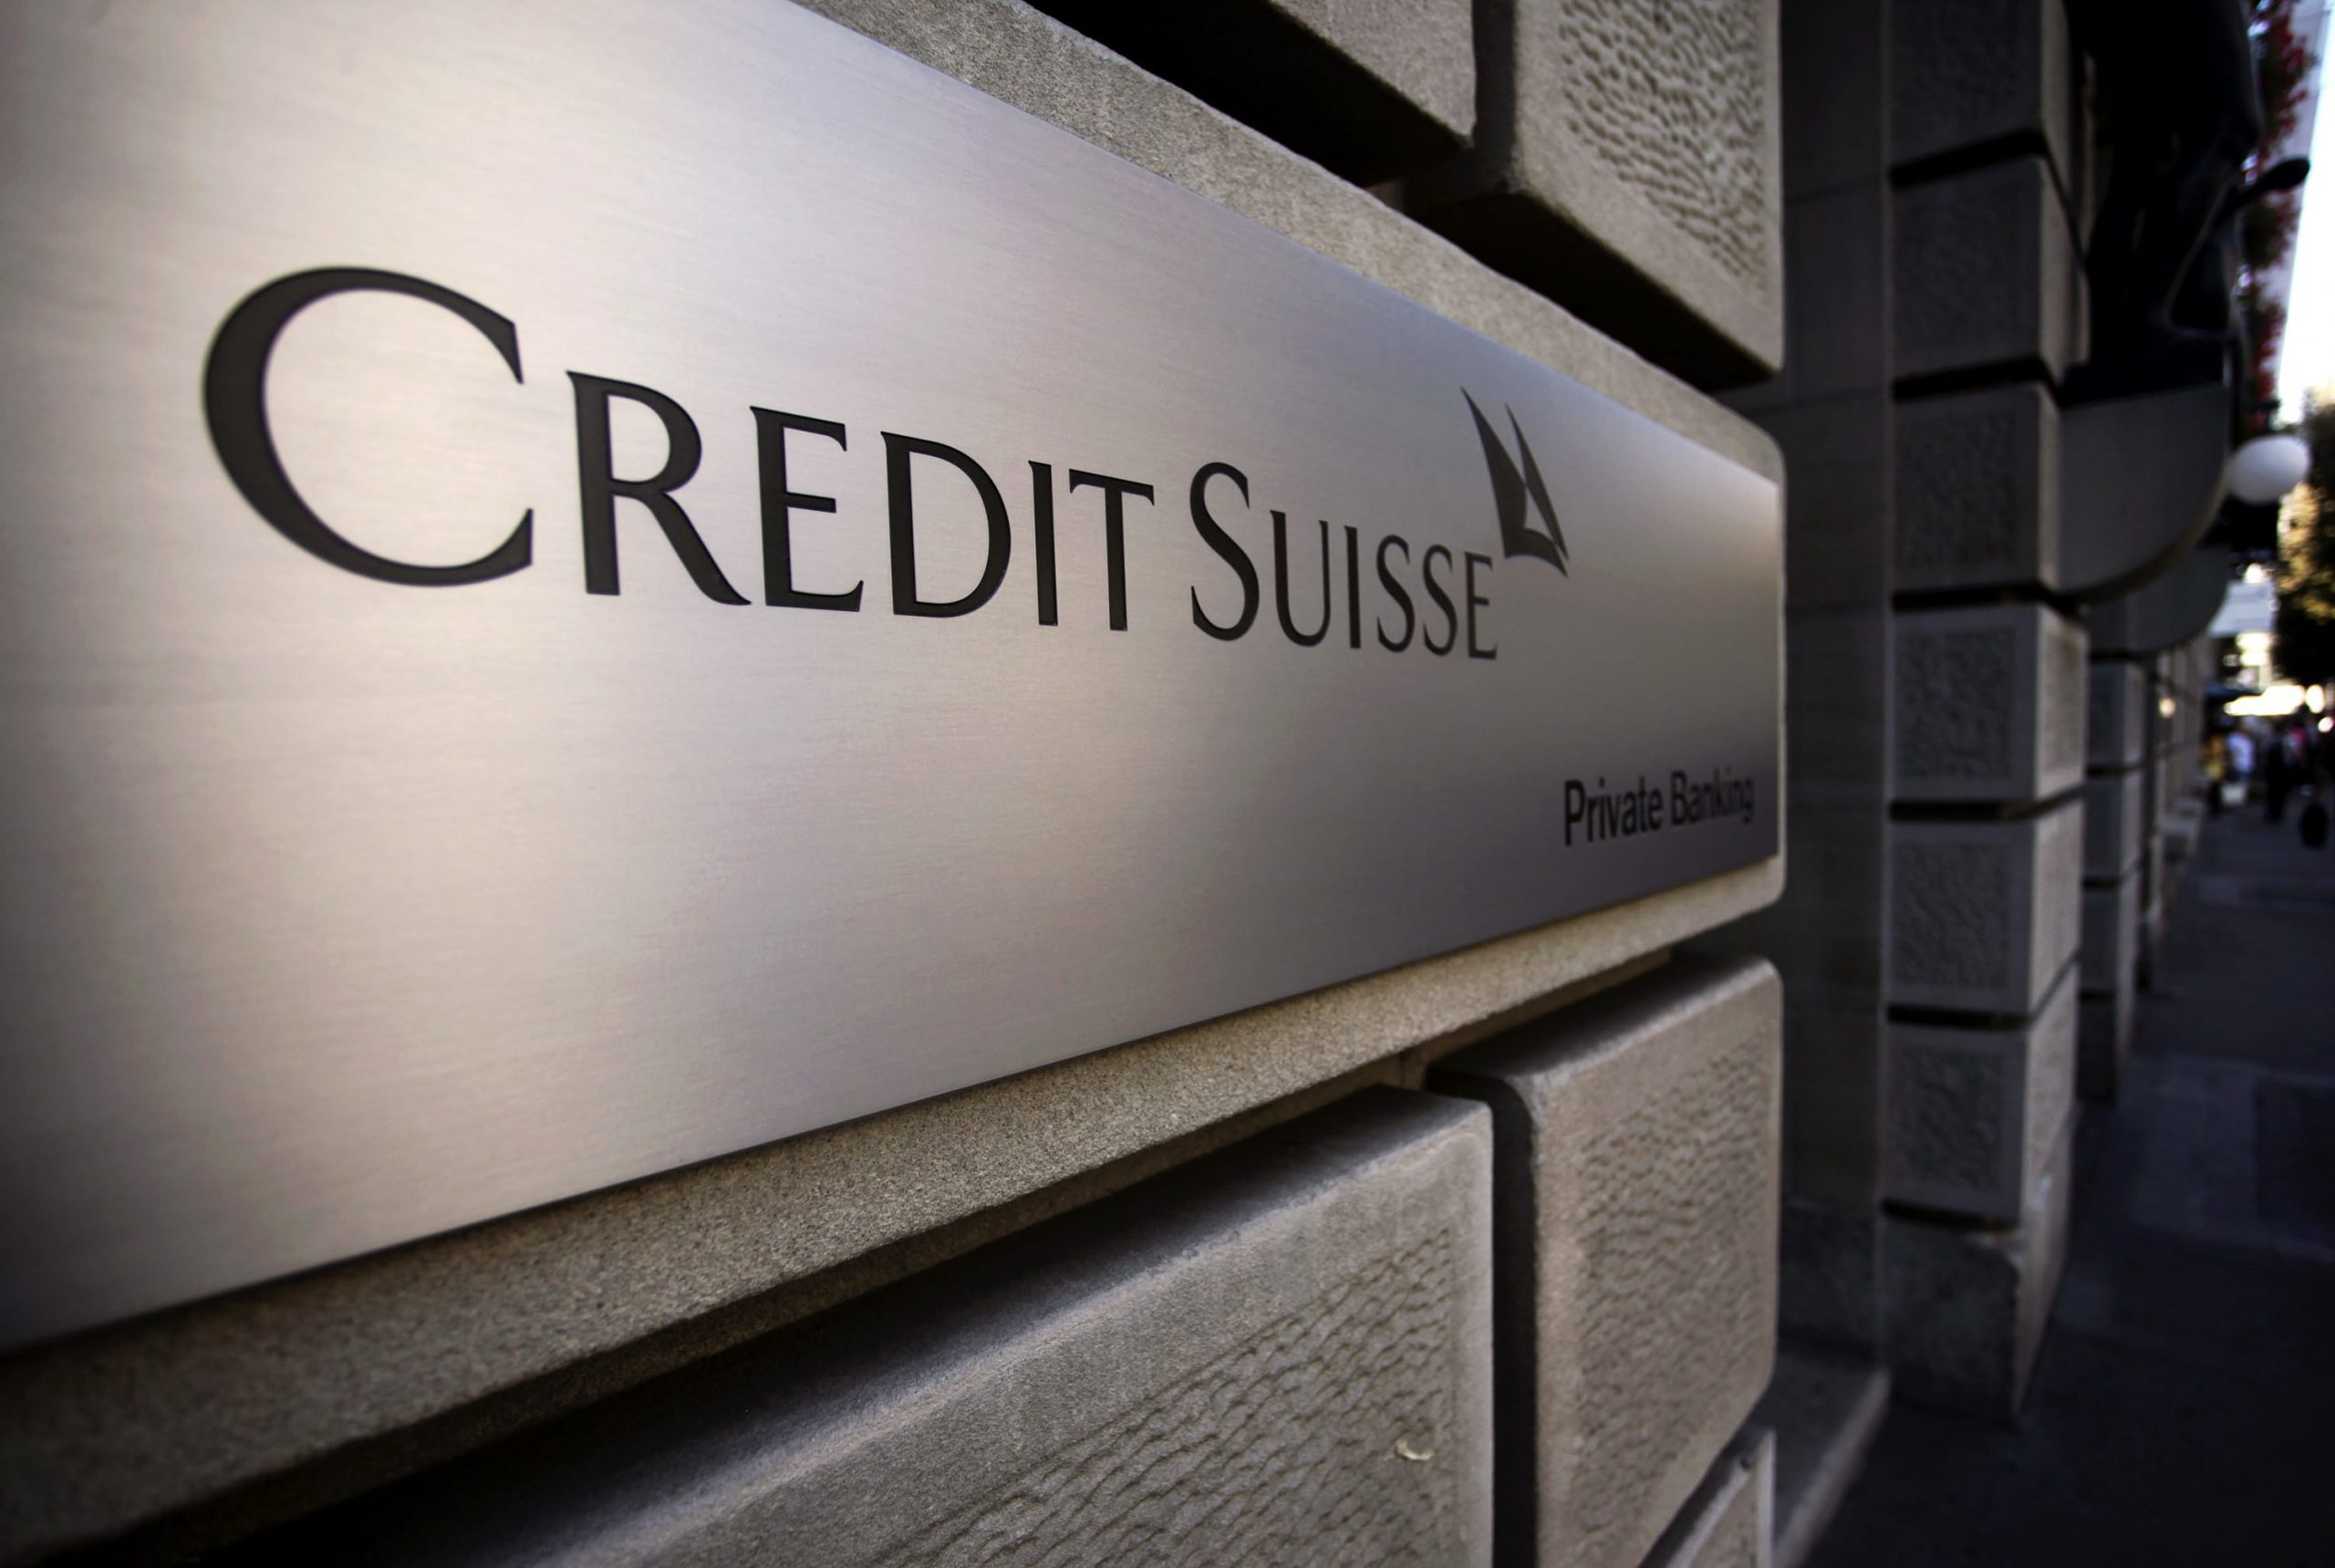 Ex-Credit Suisse exec says she was fired and harassed when she wouldn't bend accounting rules